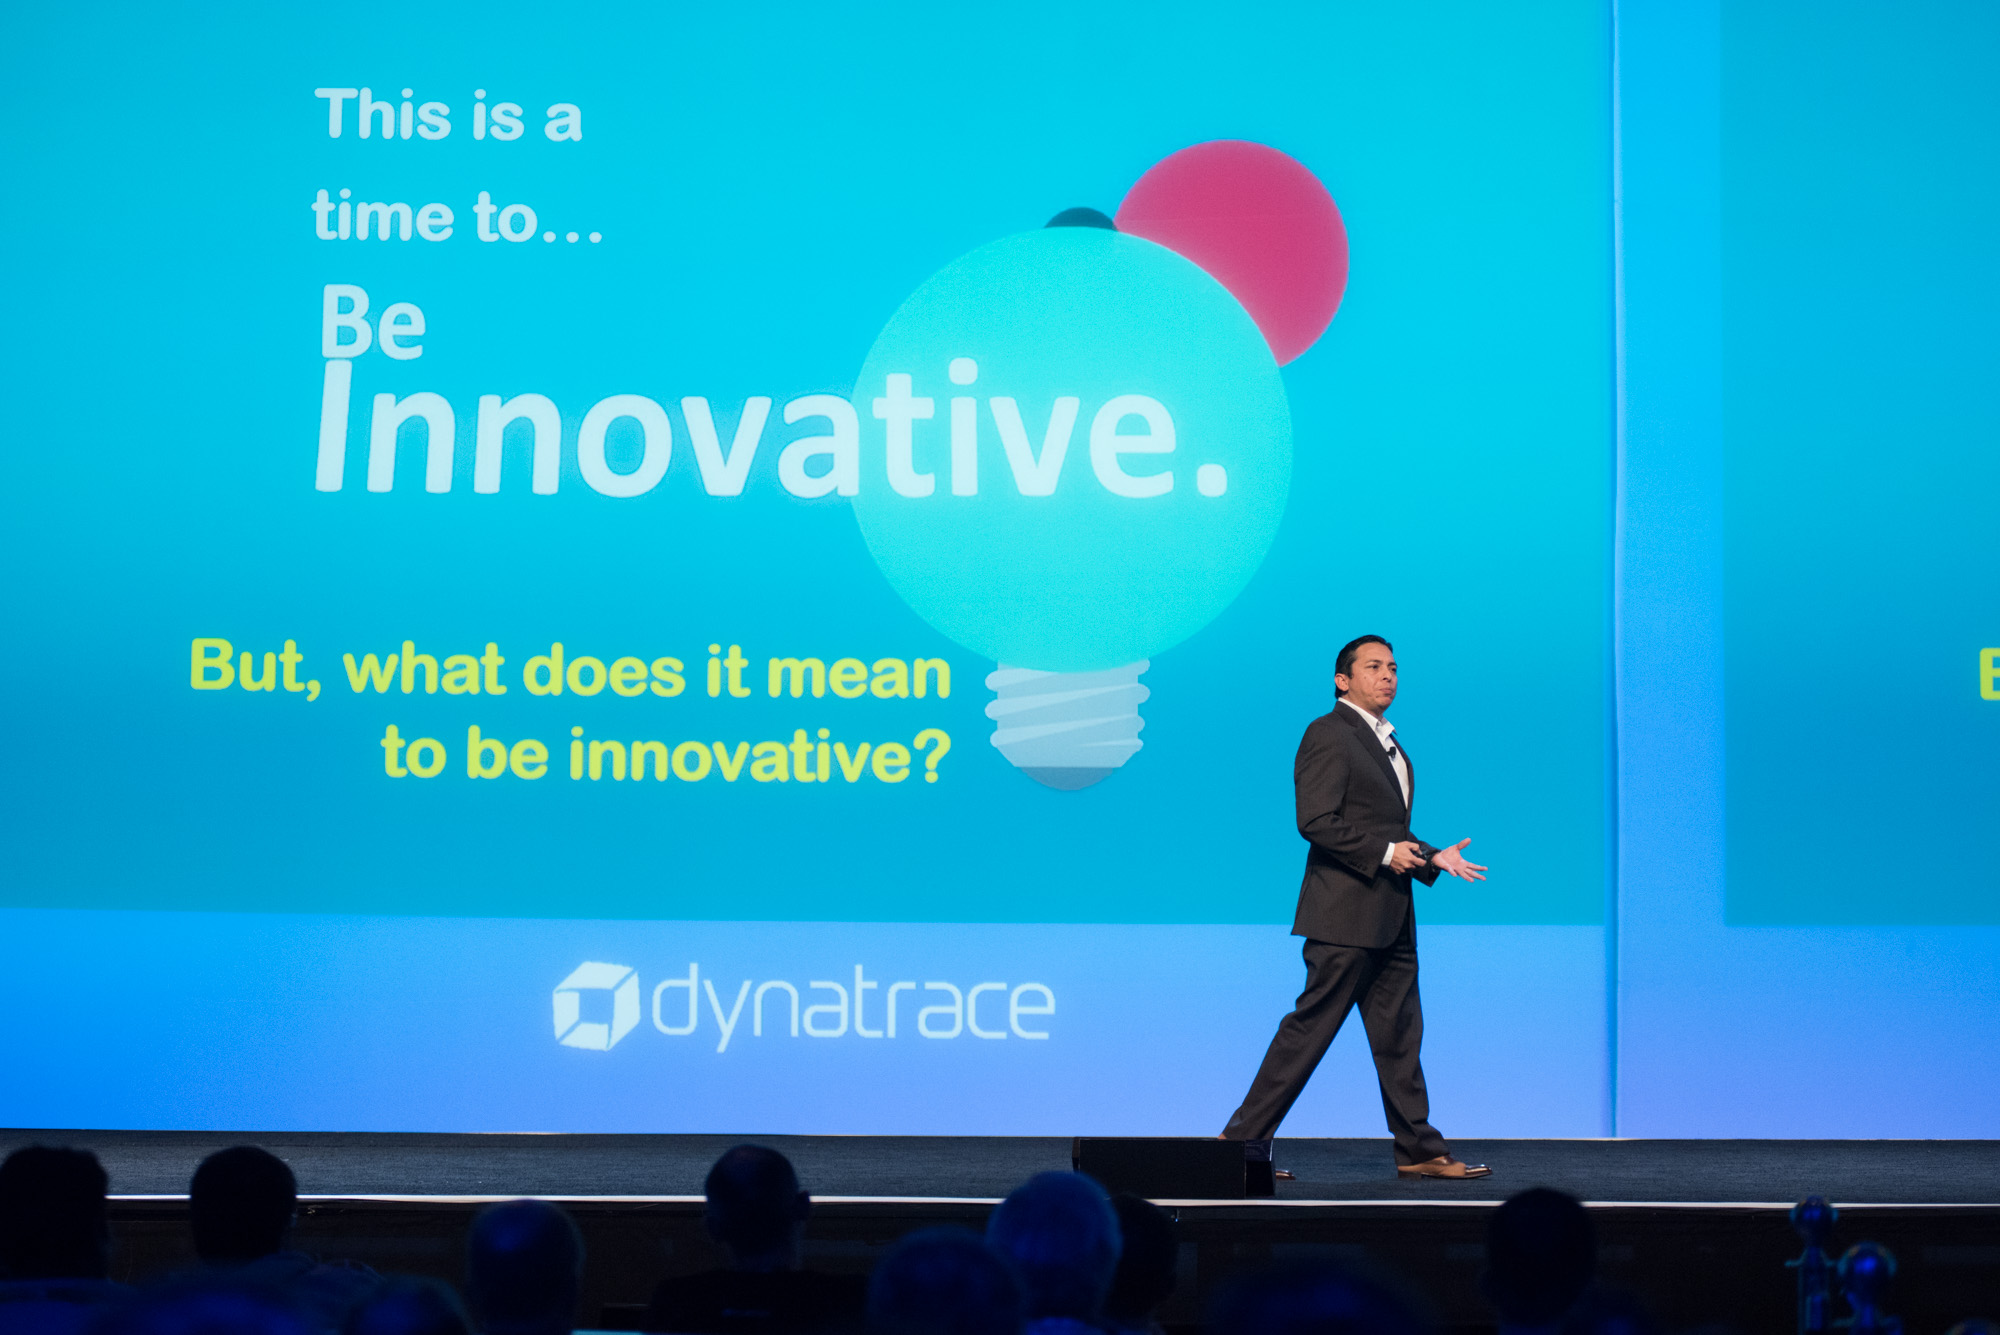 Brian Solis presenting at perform 2018 about what it means to be innovative